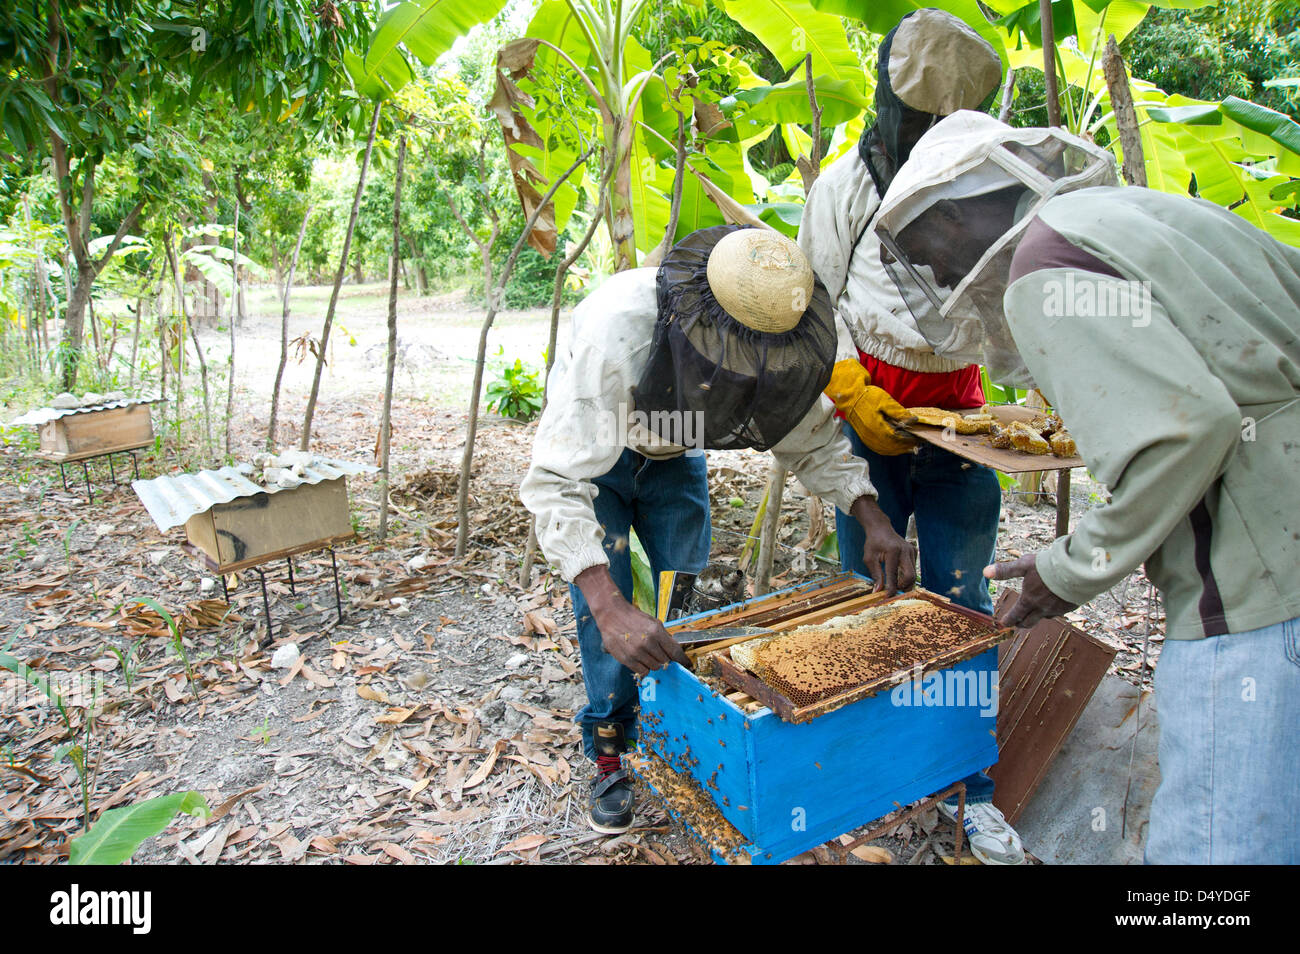 March 4, 2013 - Cote Des Arcadins, Haiti - March 4, 2013, Cote des Arcadins, Haiti - Beekeepers collect honeycomb - Stock Image